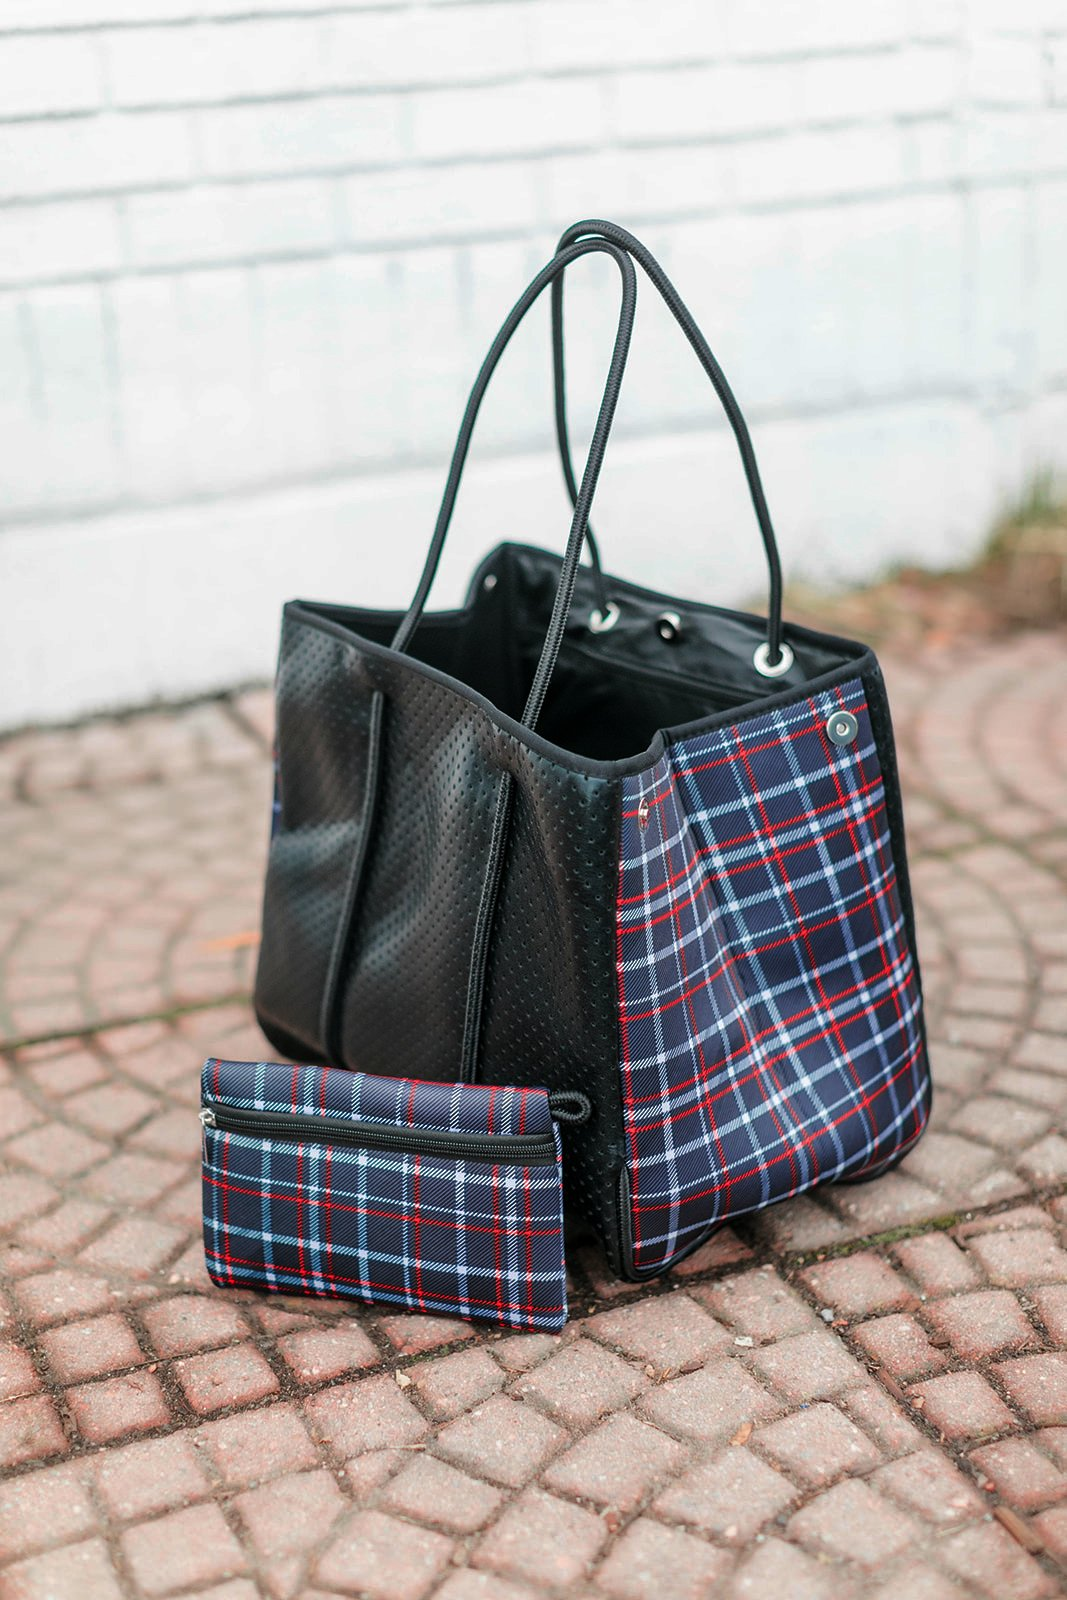 The Be All, Catch All Bag In Peekaboo Bloom Plaid - Thongin' It Boutique